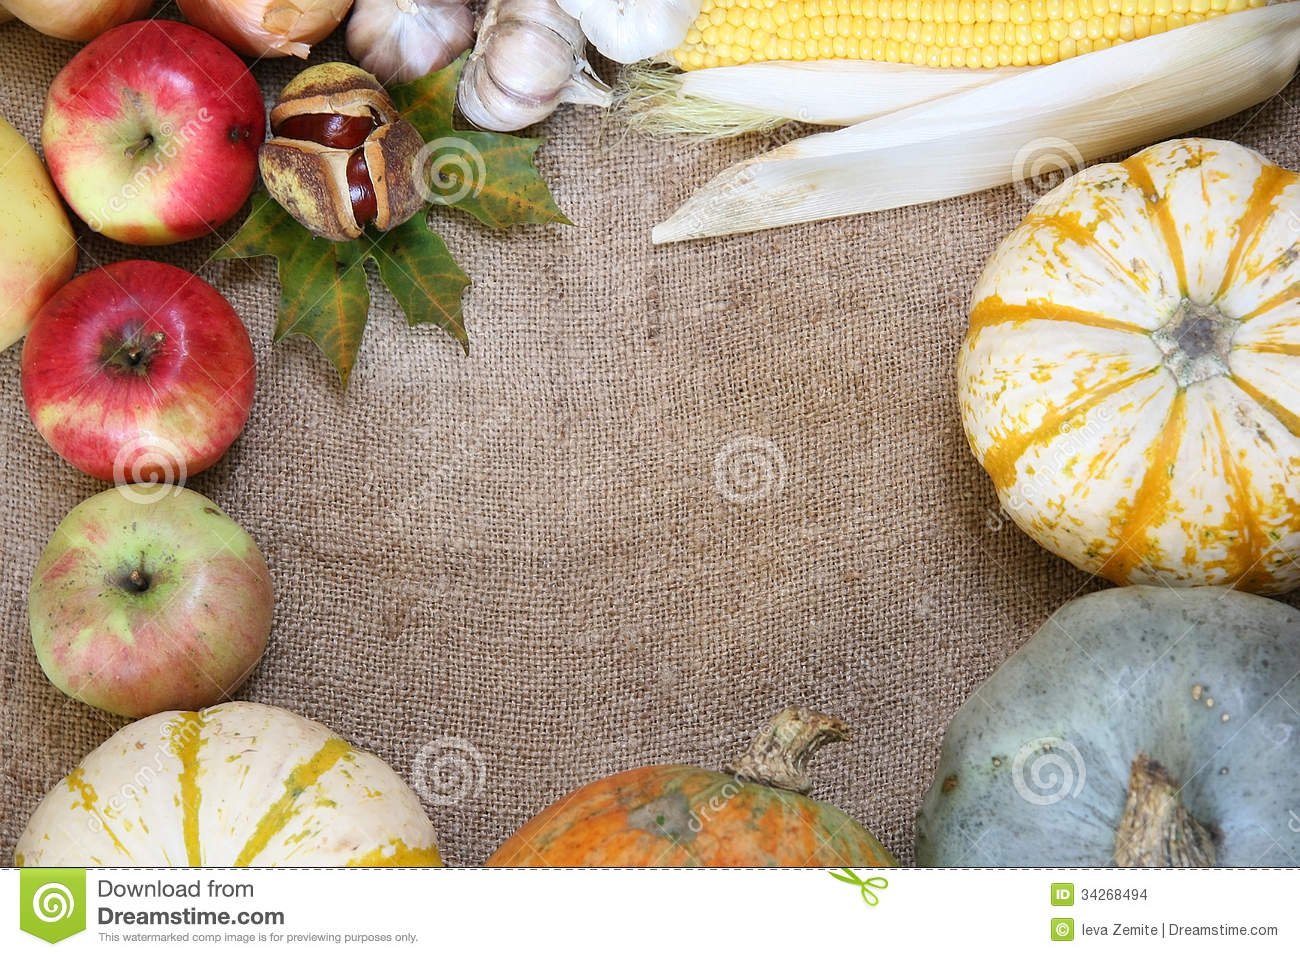 Pin Frames Borders Vegetables Wallpapers Ajilbabcom Portal on 1300x957